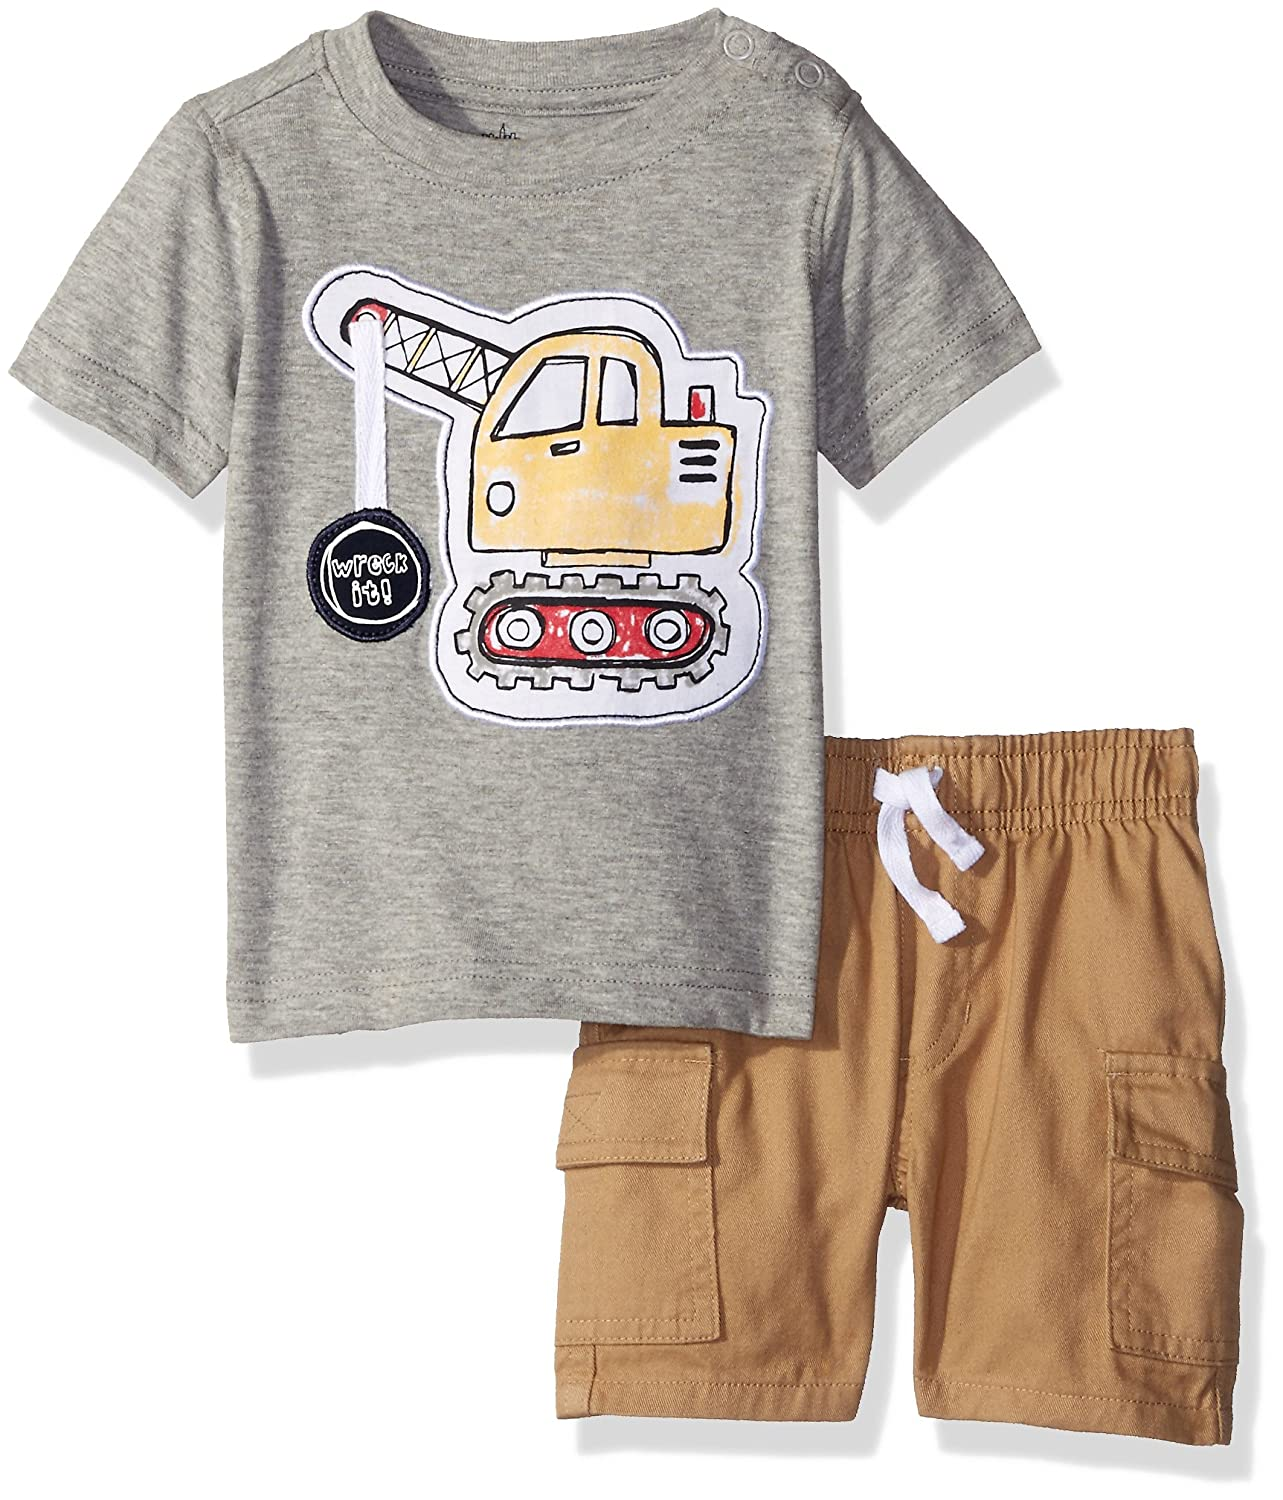 Kids Headquarters Baby Boys Jersey Tee with Applique and Cargo Woven Shorts